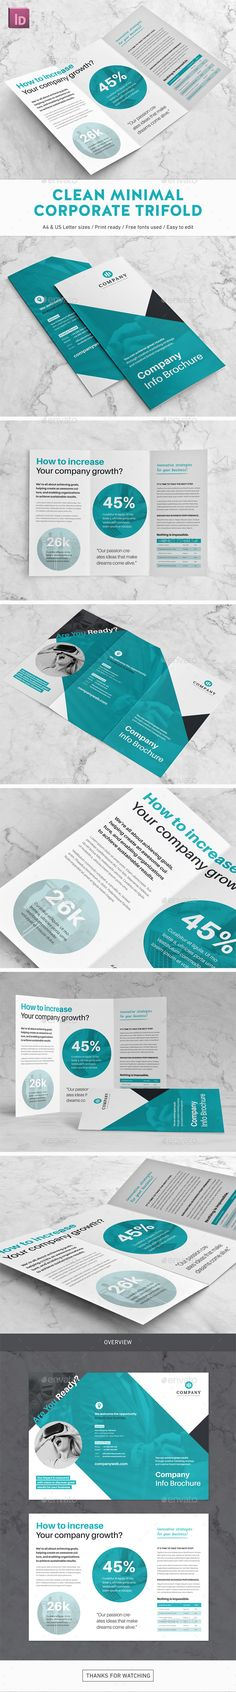 Clean Minimal Corporate Trifold Brochure Design Template - Corporate Brochures Design Template InDesign INDD. Download here: https://graphicriver.net/item/clean-minimal-corporate-trifold-brochure/19425211?ref=yinkira